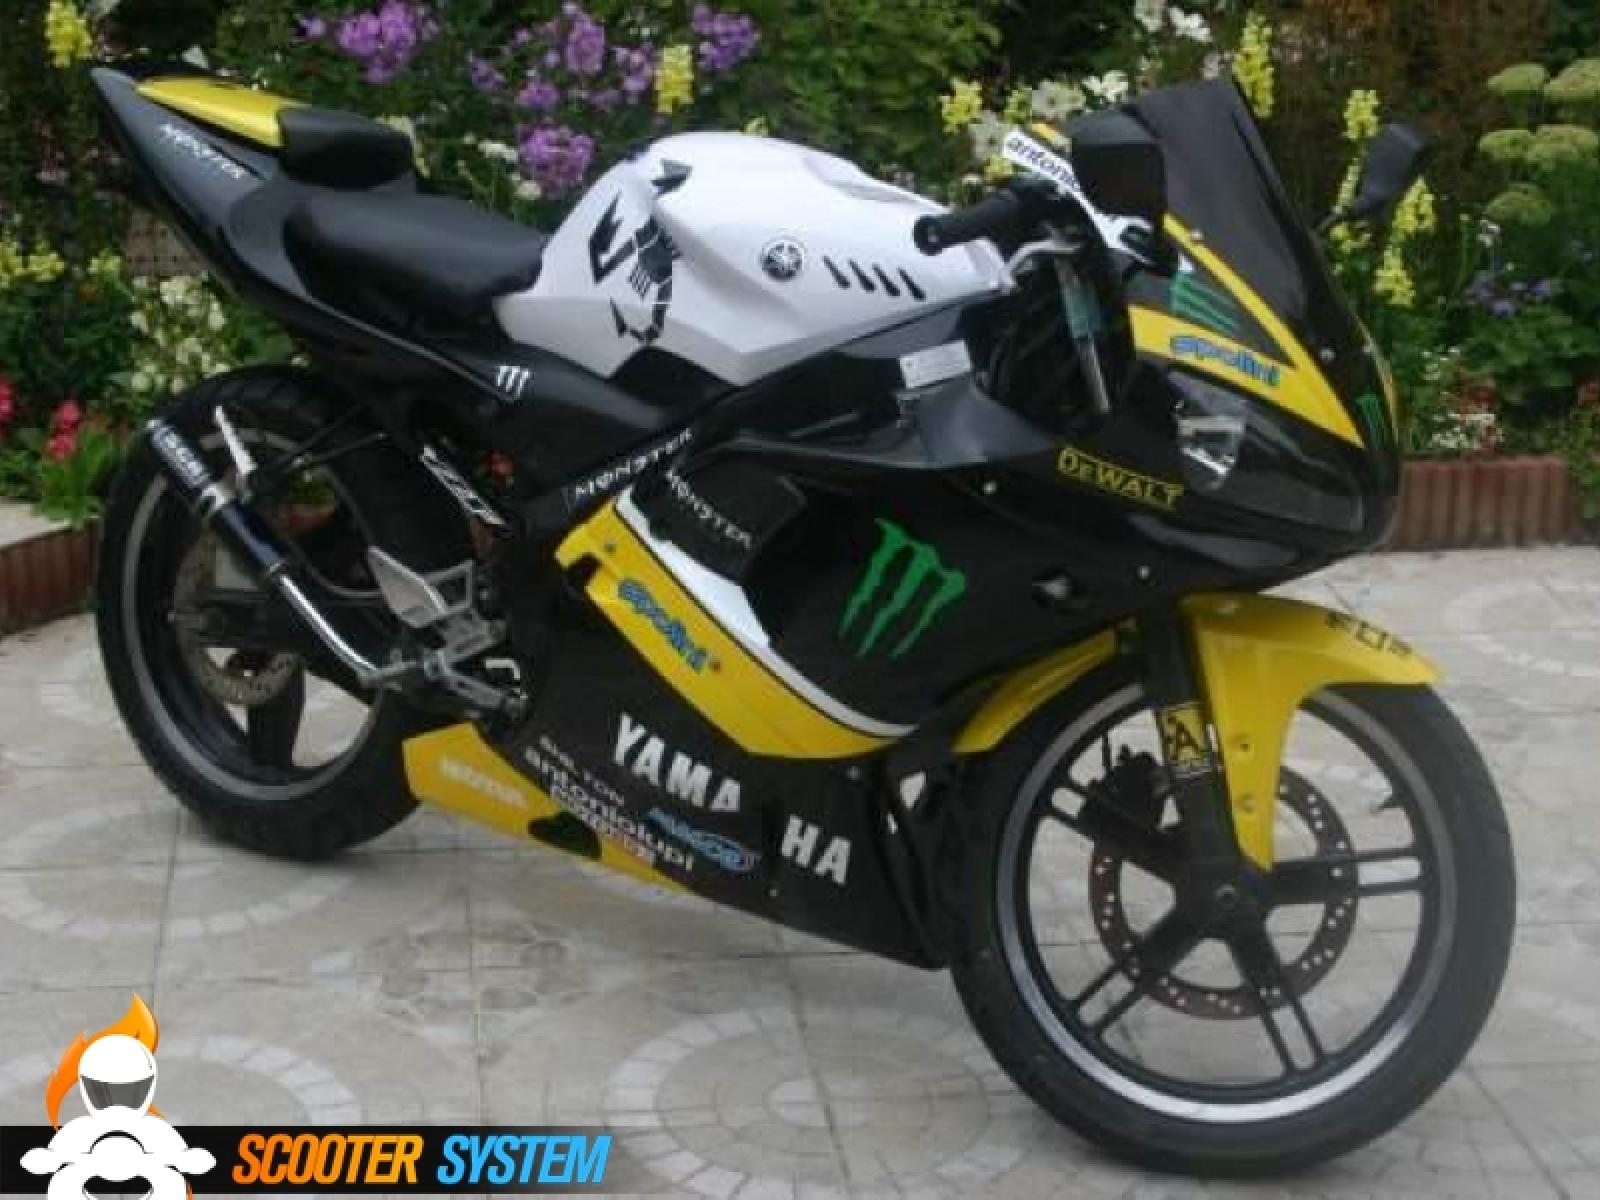 yamaha yamaha tzr 50 race replica moto zombdrive com. Black Bedroom Furniture Sets. Home Design Ideas